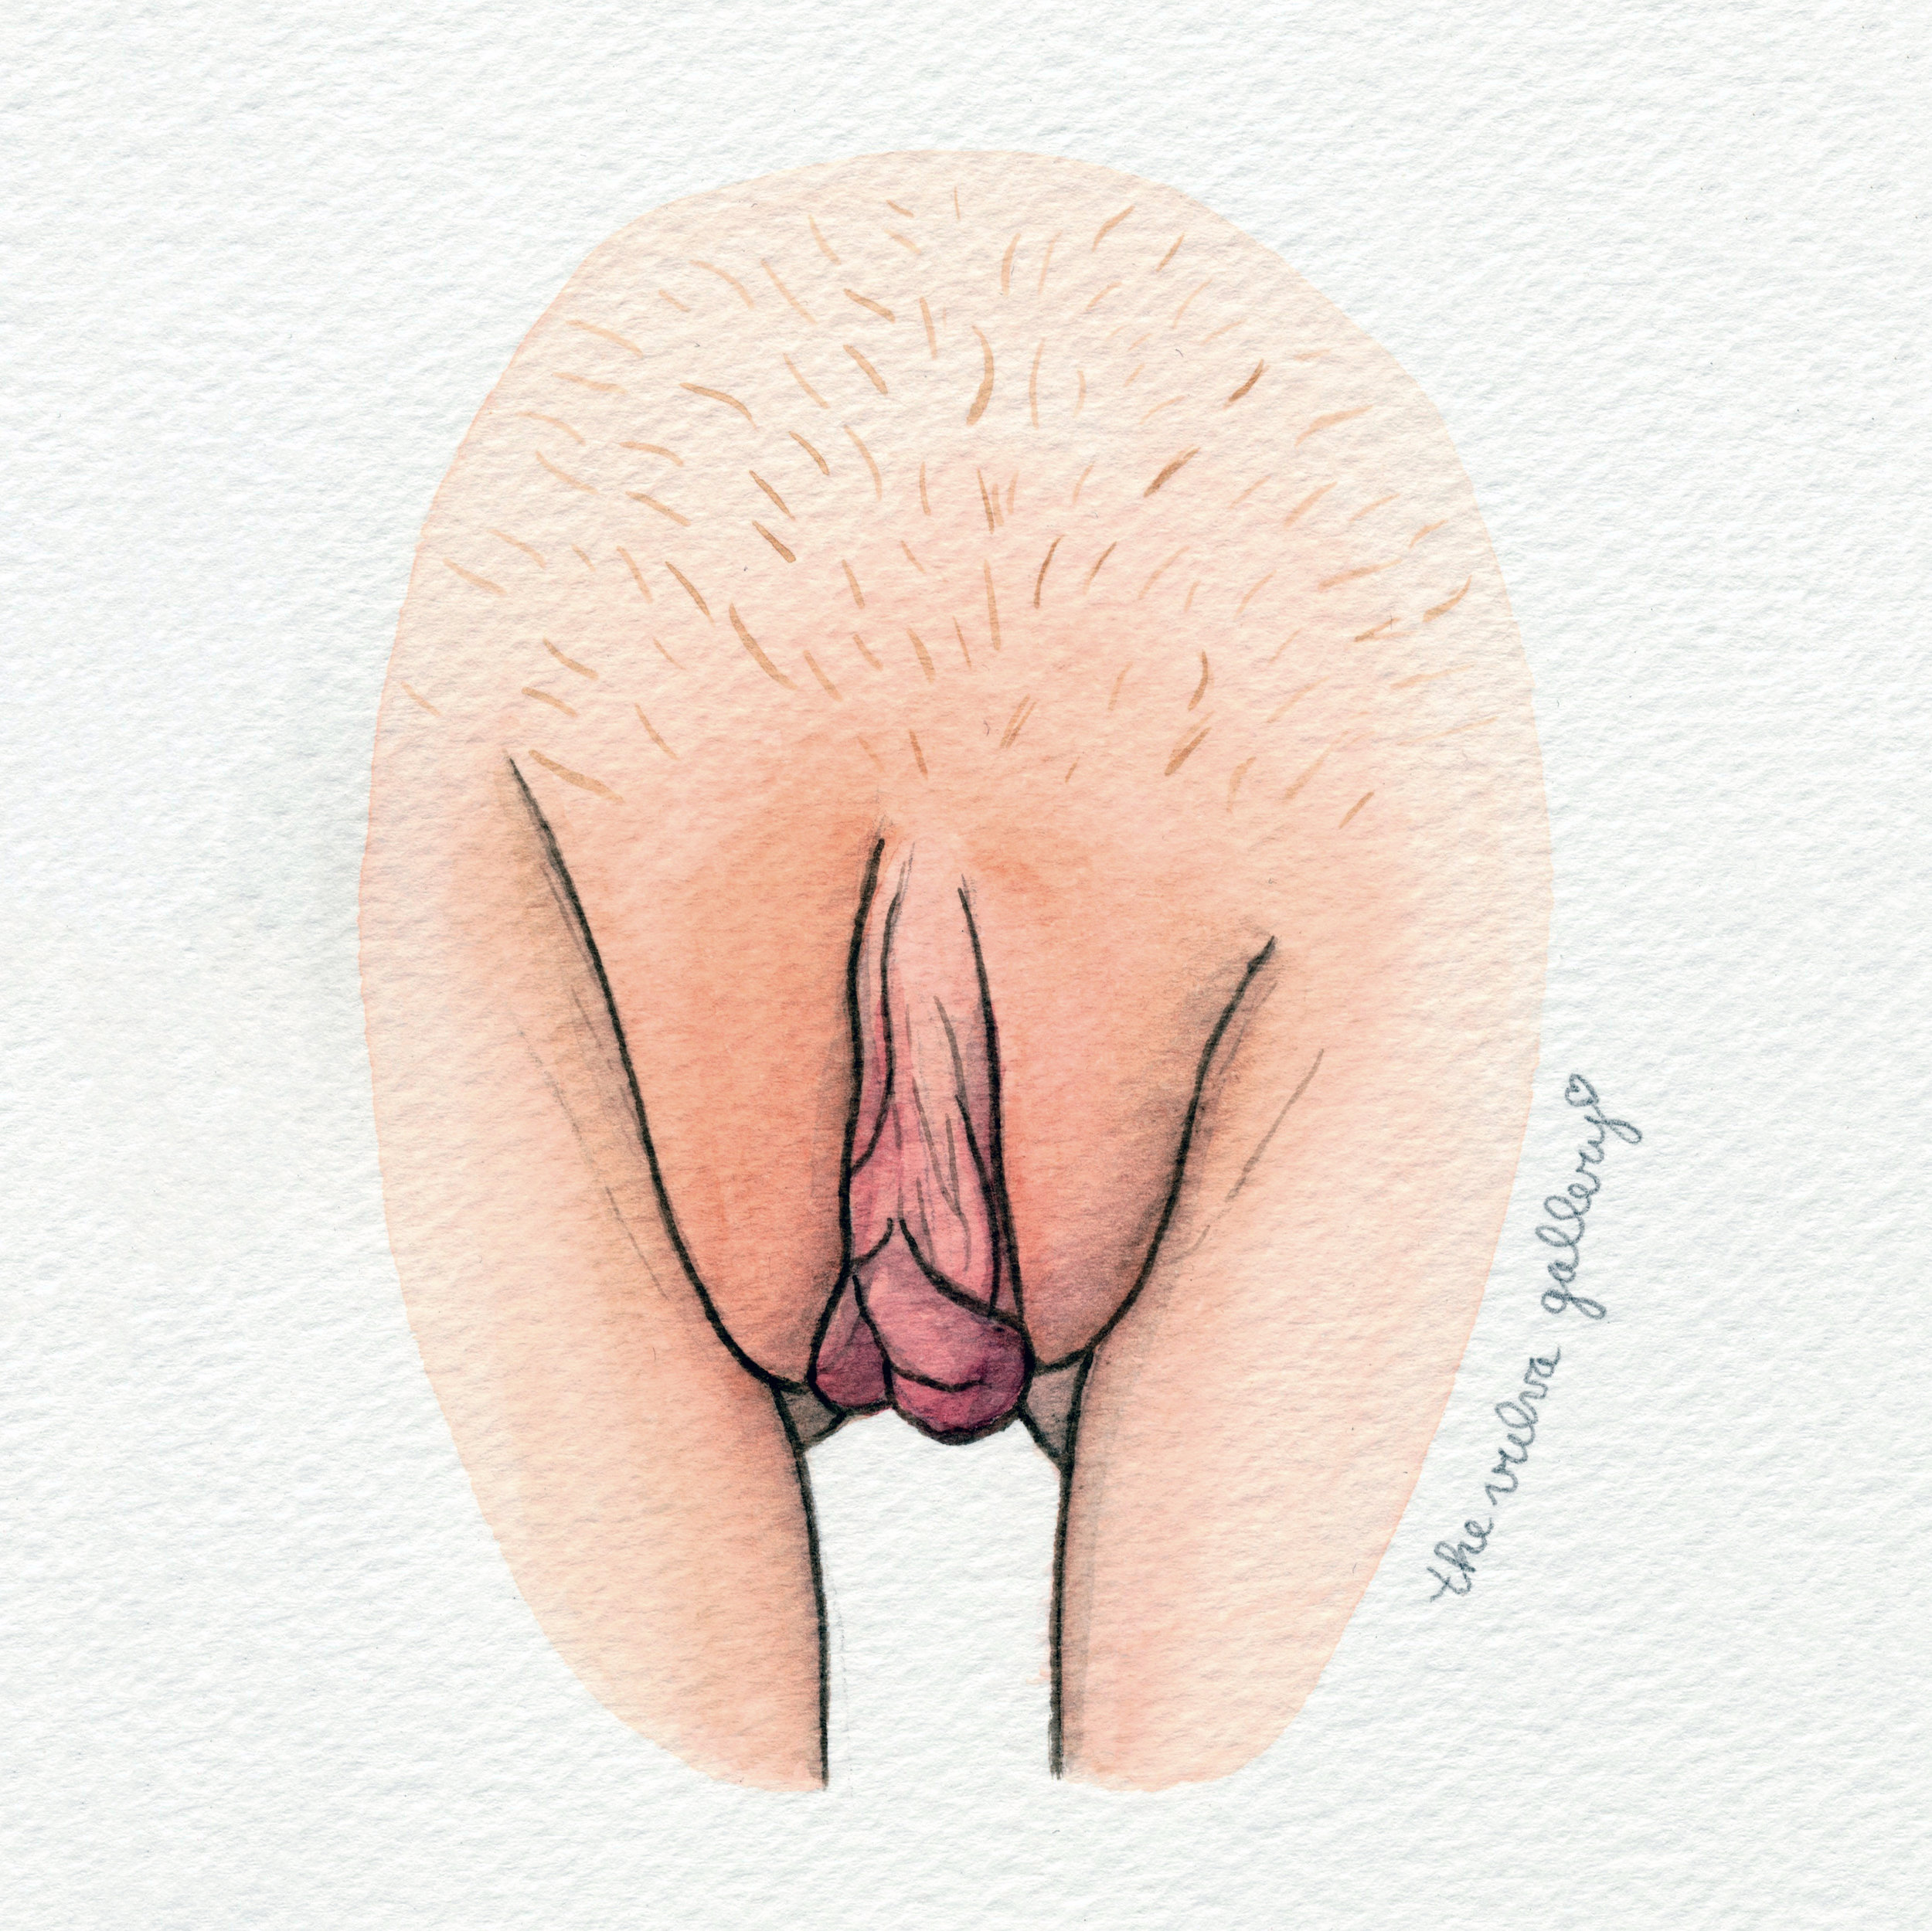 The Vulva Gallery - Vulva Portrait #183 (s).jpg